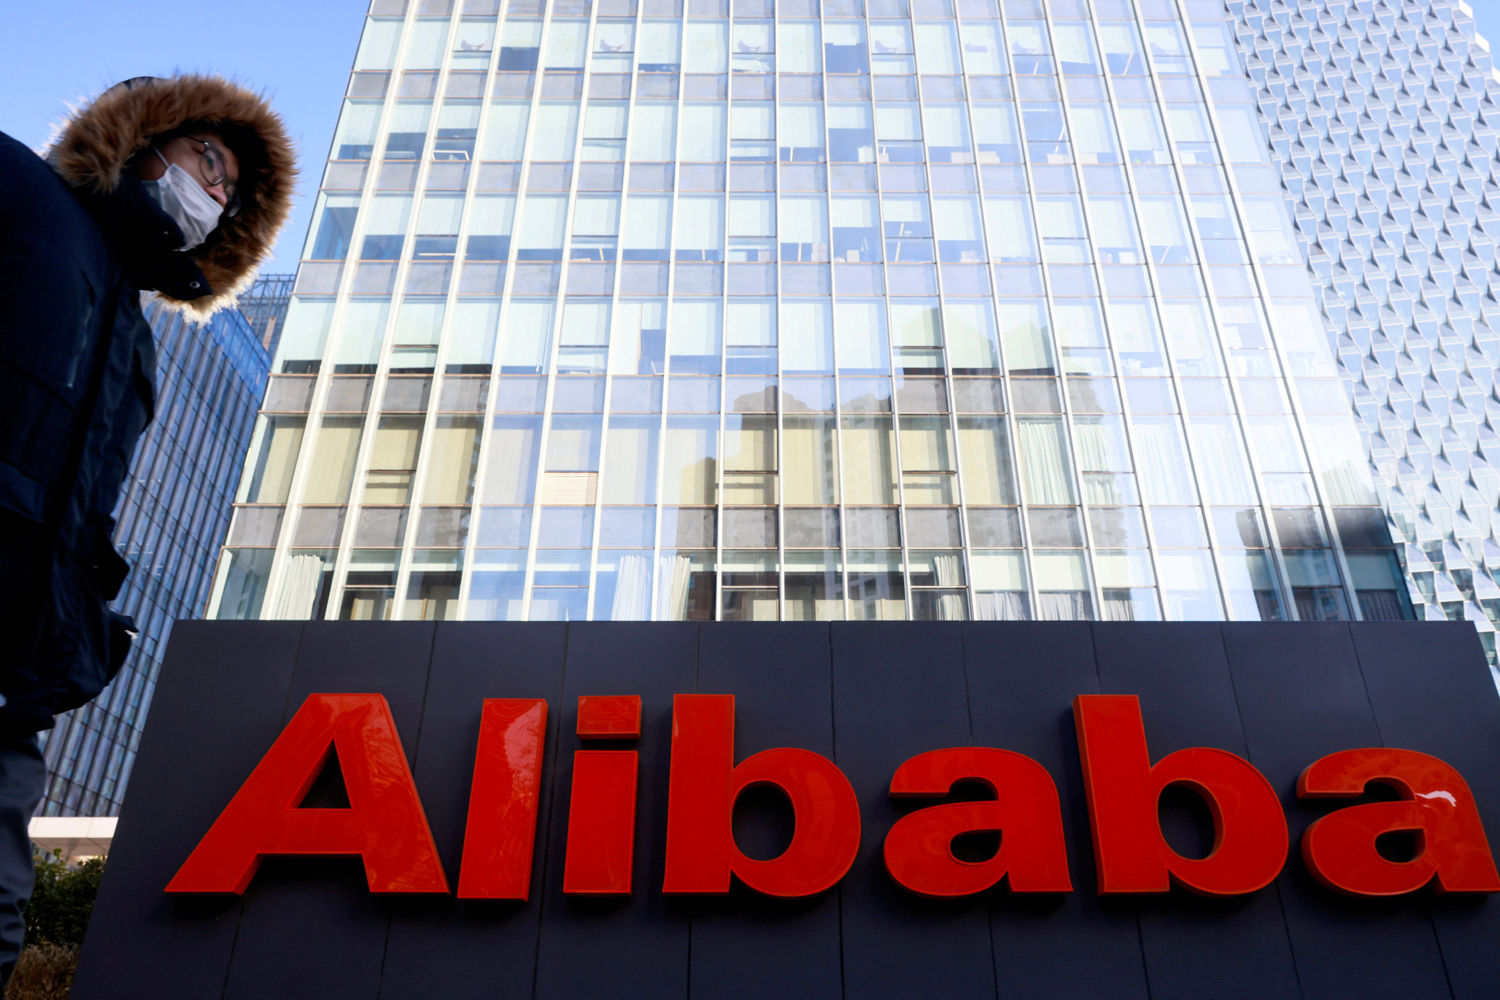 China regulator hits Alibaba with record $2.8 billion fine